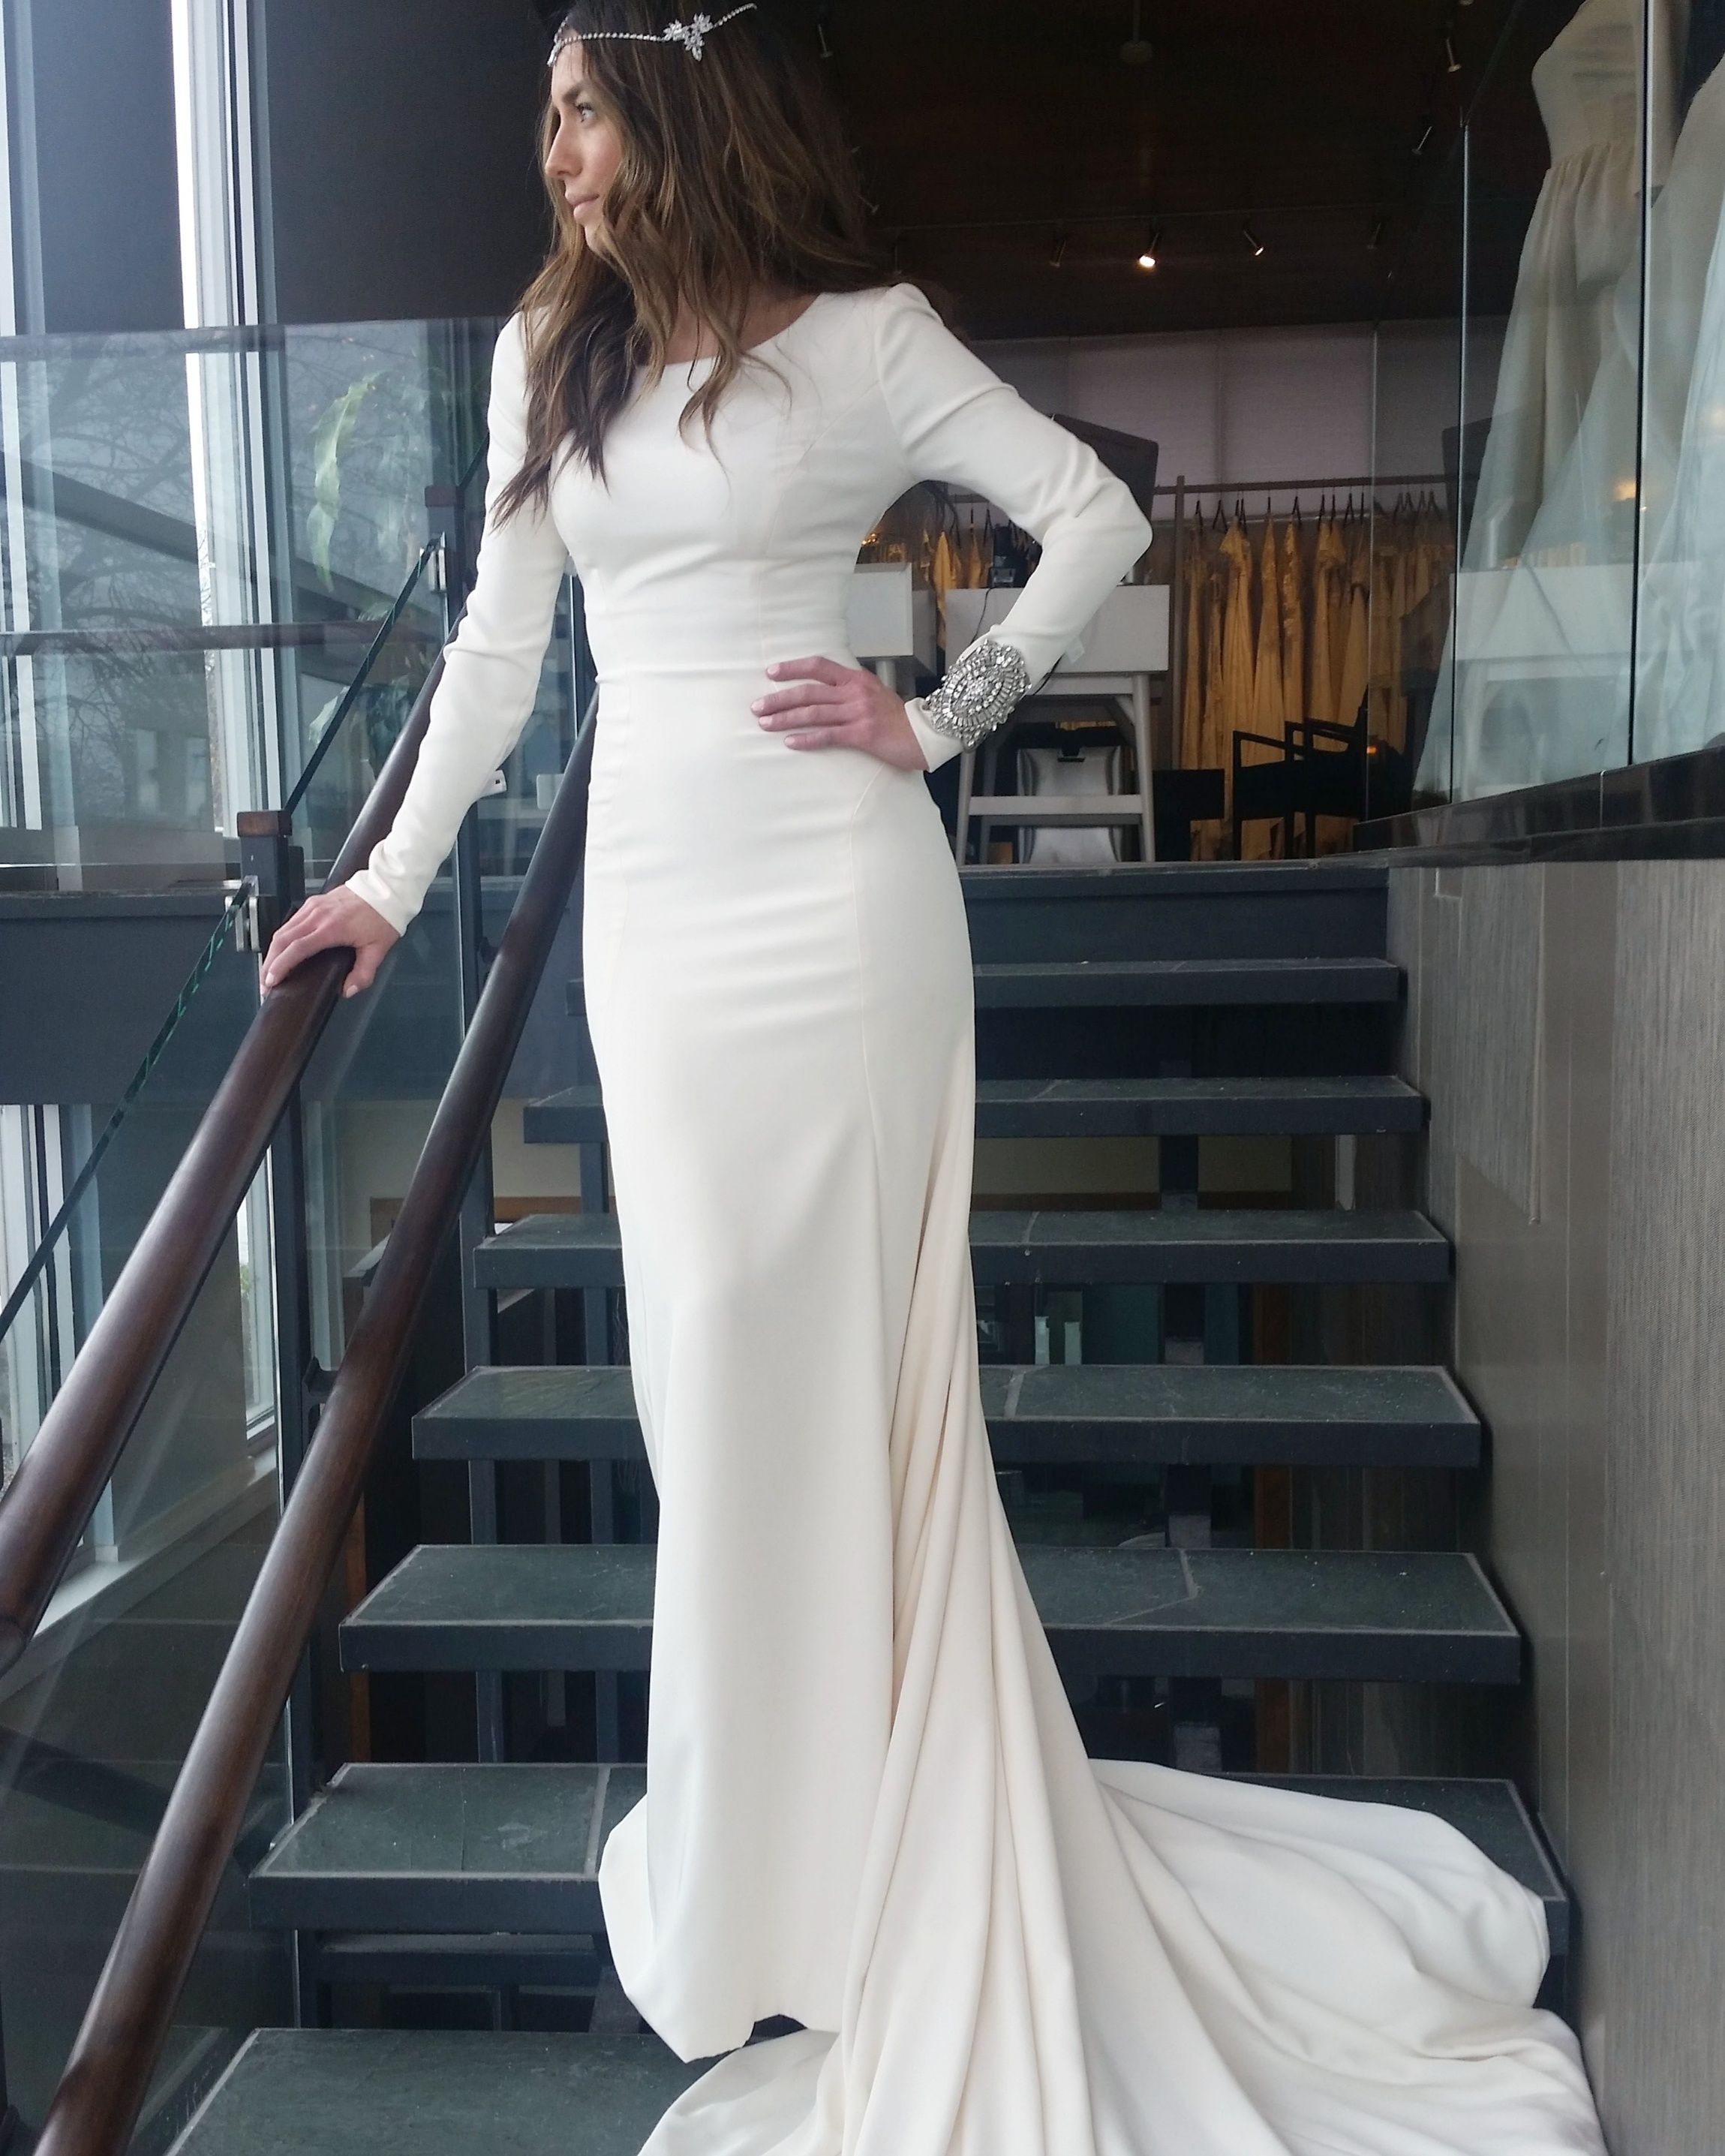 Modest wedding dress with long sleeves and a slim skirt from alta